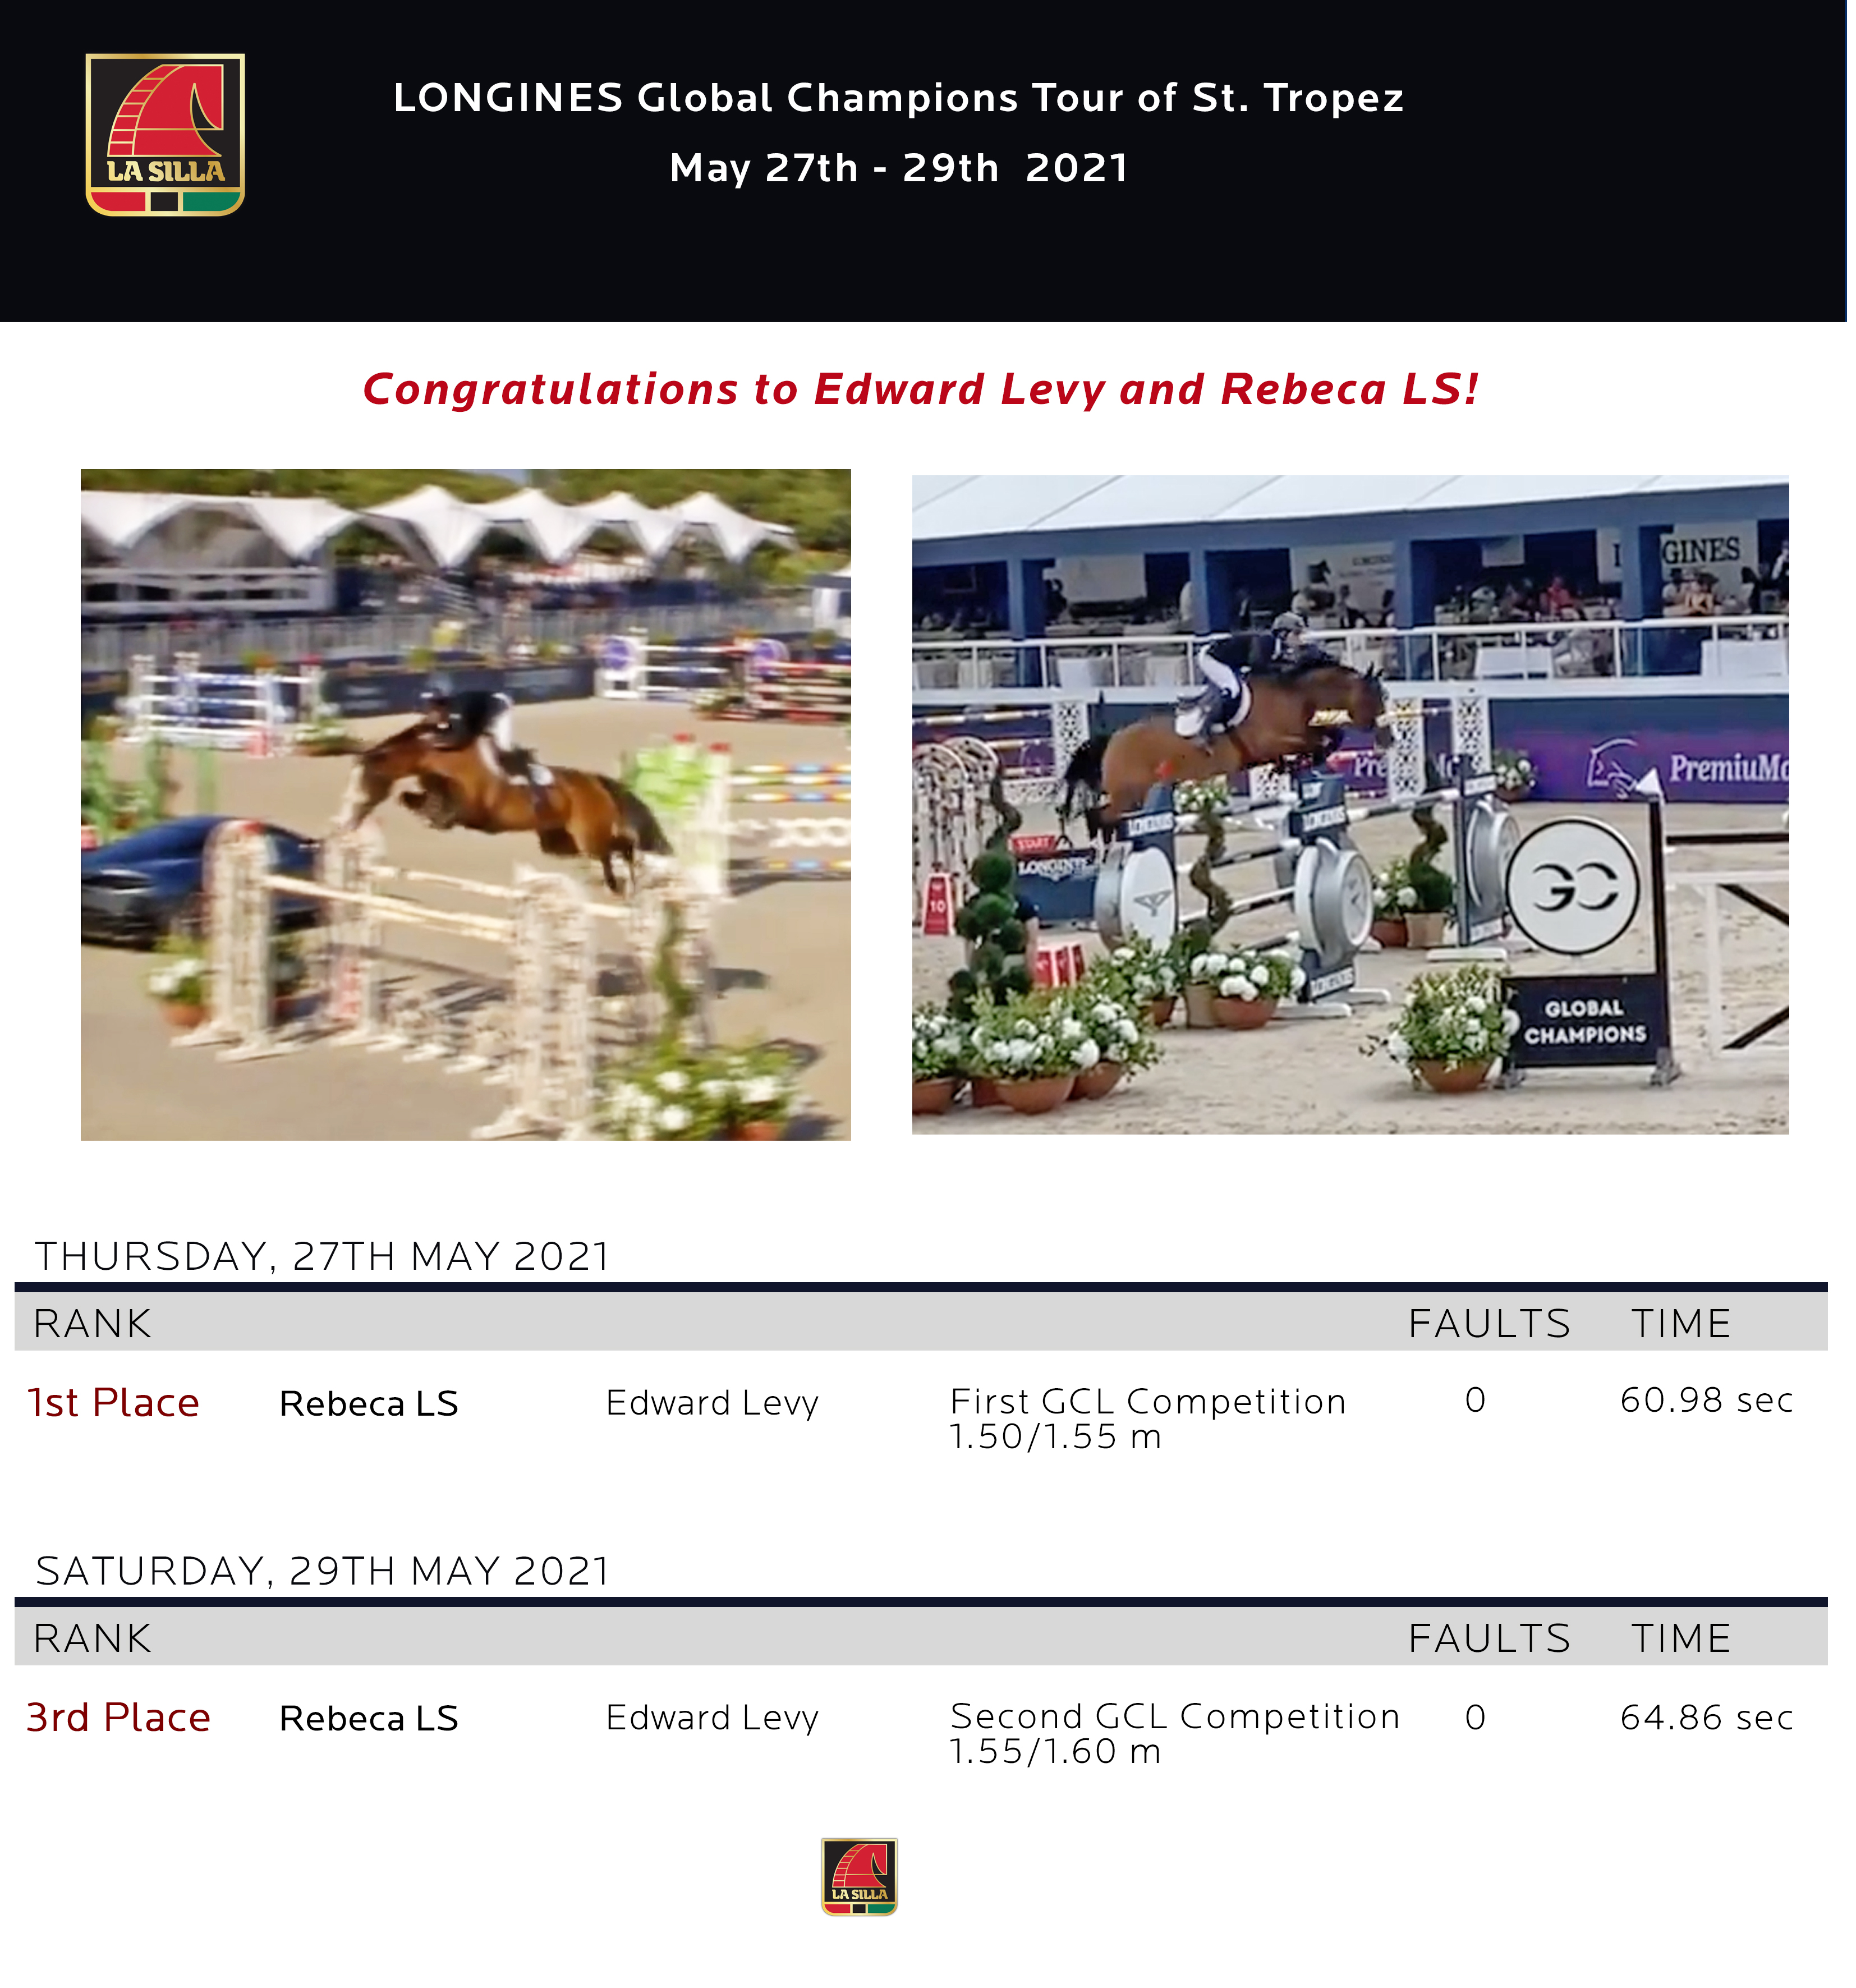 LONGINES-GCT-St.-Tropez---May-27th---29th--2021